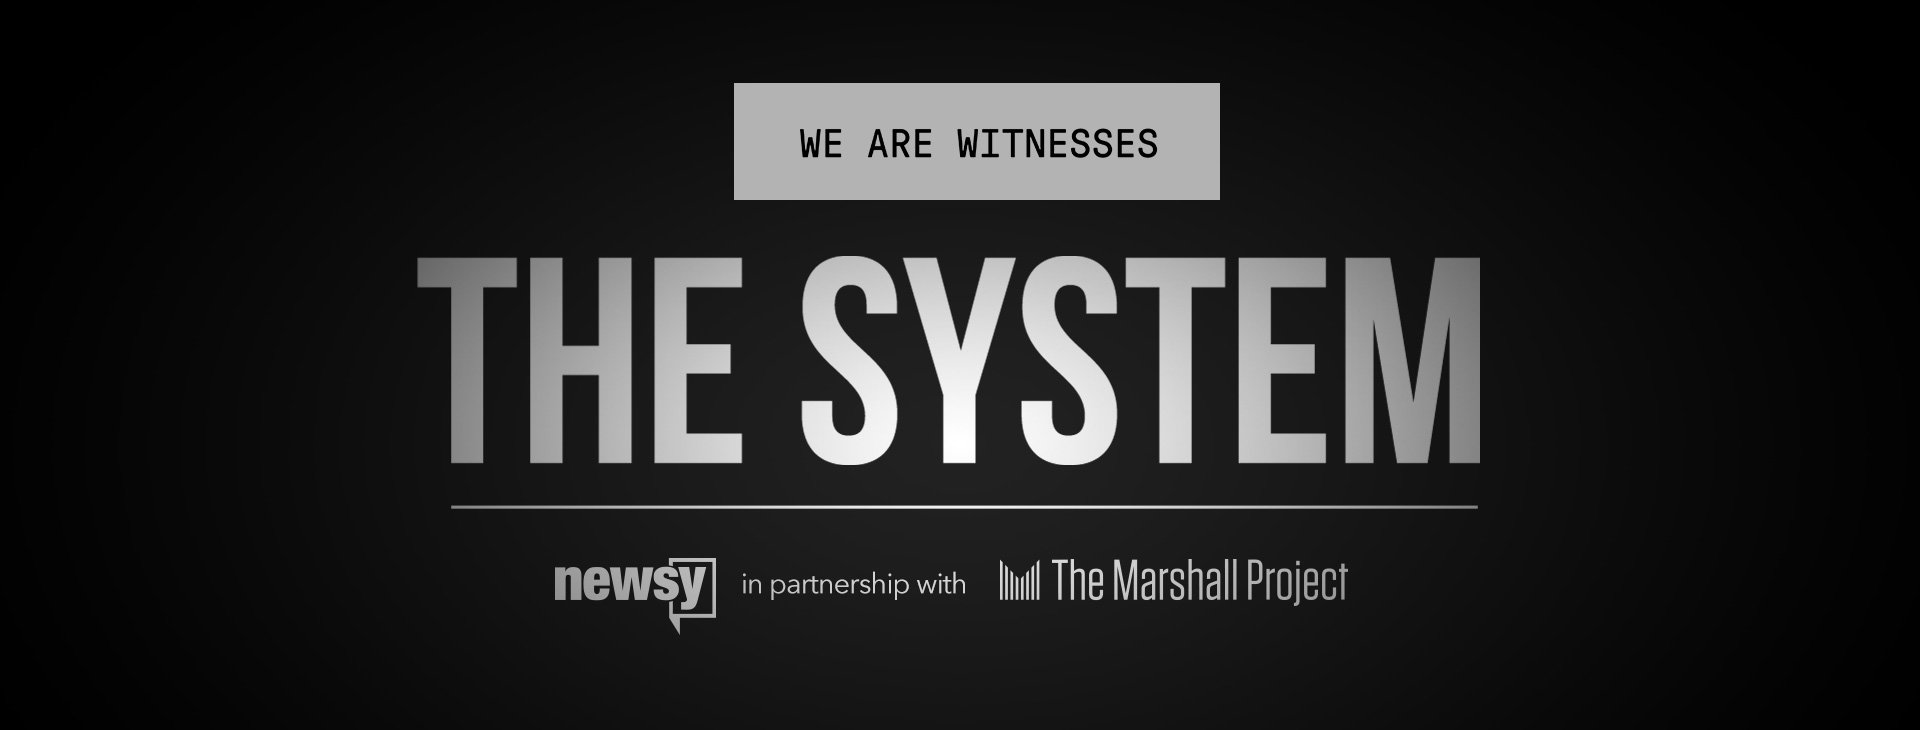 We Are Witnesses: The System